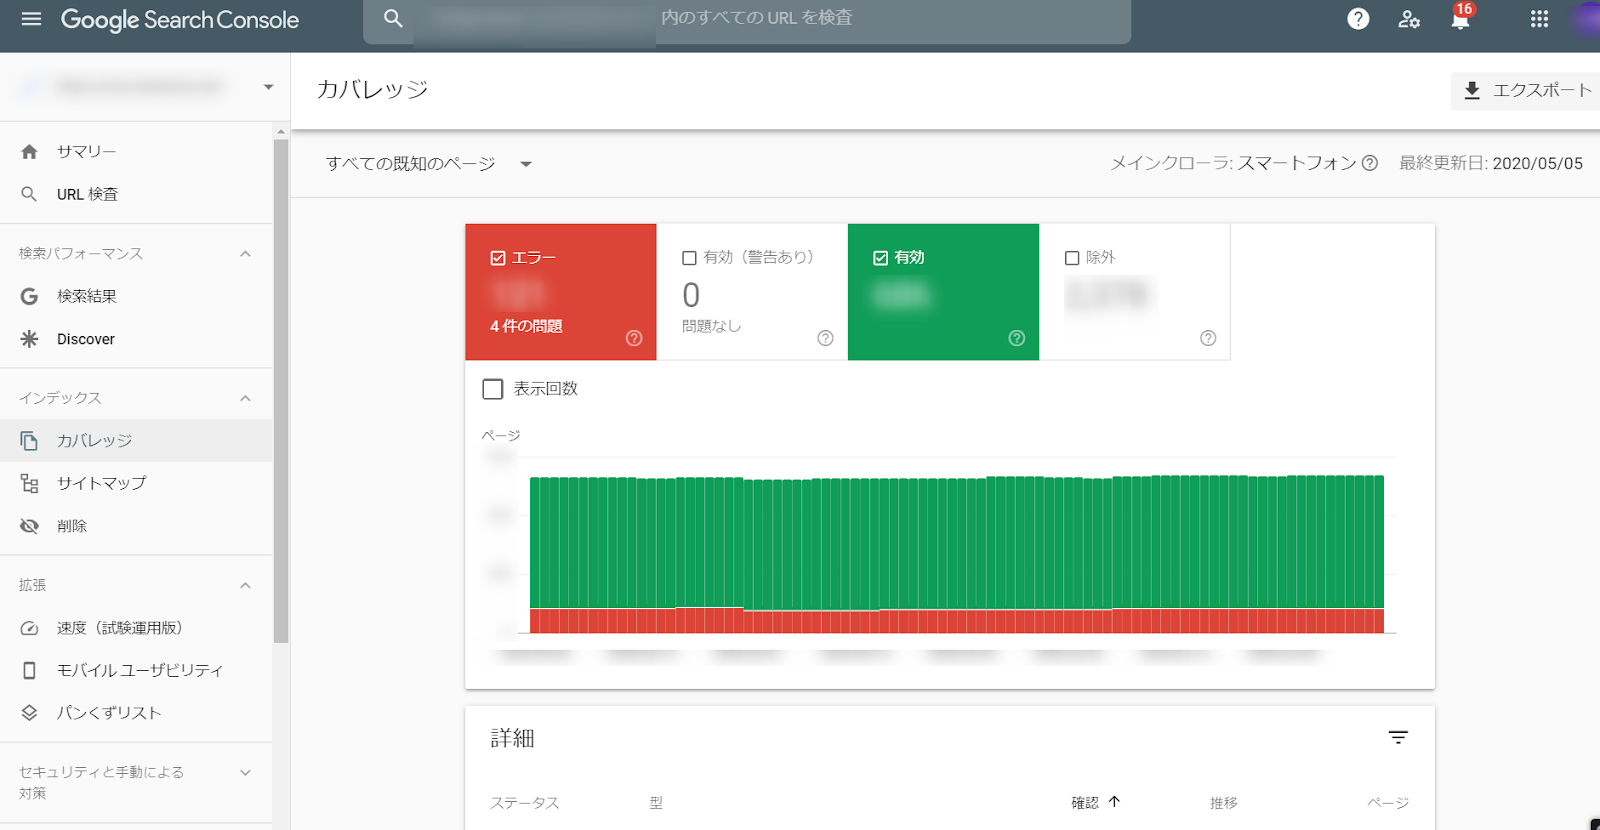 Google research consoleのスクリーンショット